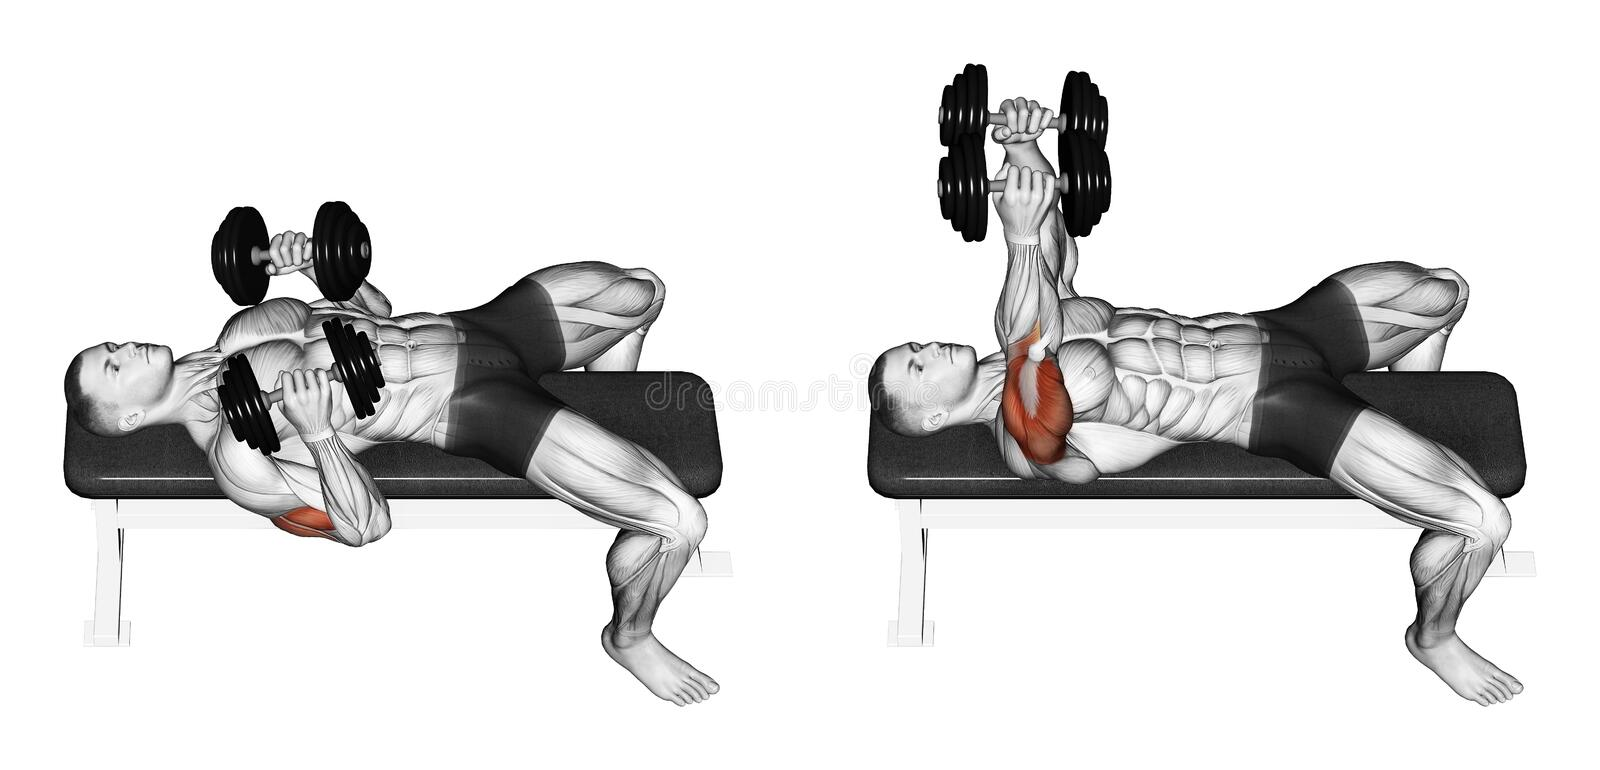 Exercising. Dumbbell bench press lying down with y. Dumbbell bench press lying down with your elbows pressed. Exercising for bodybuilding. Target muscles are vector illustration